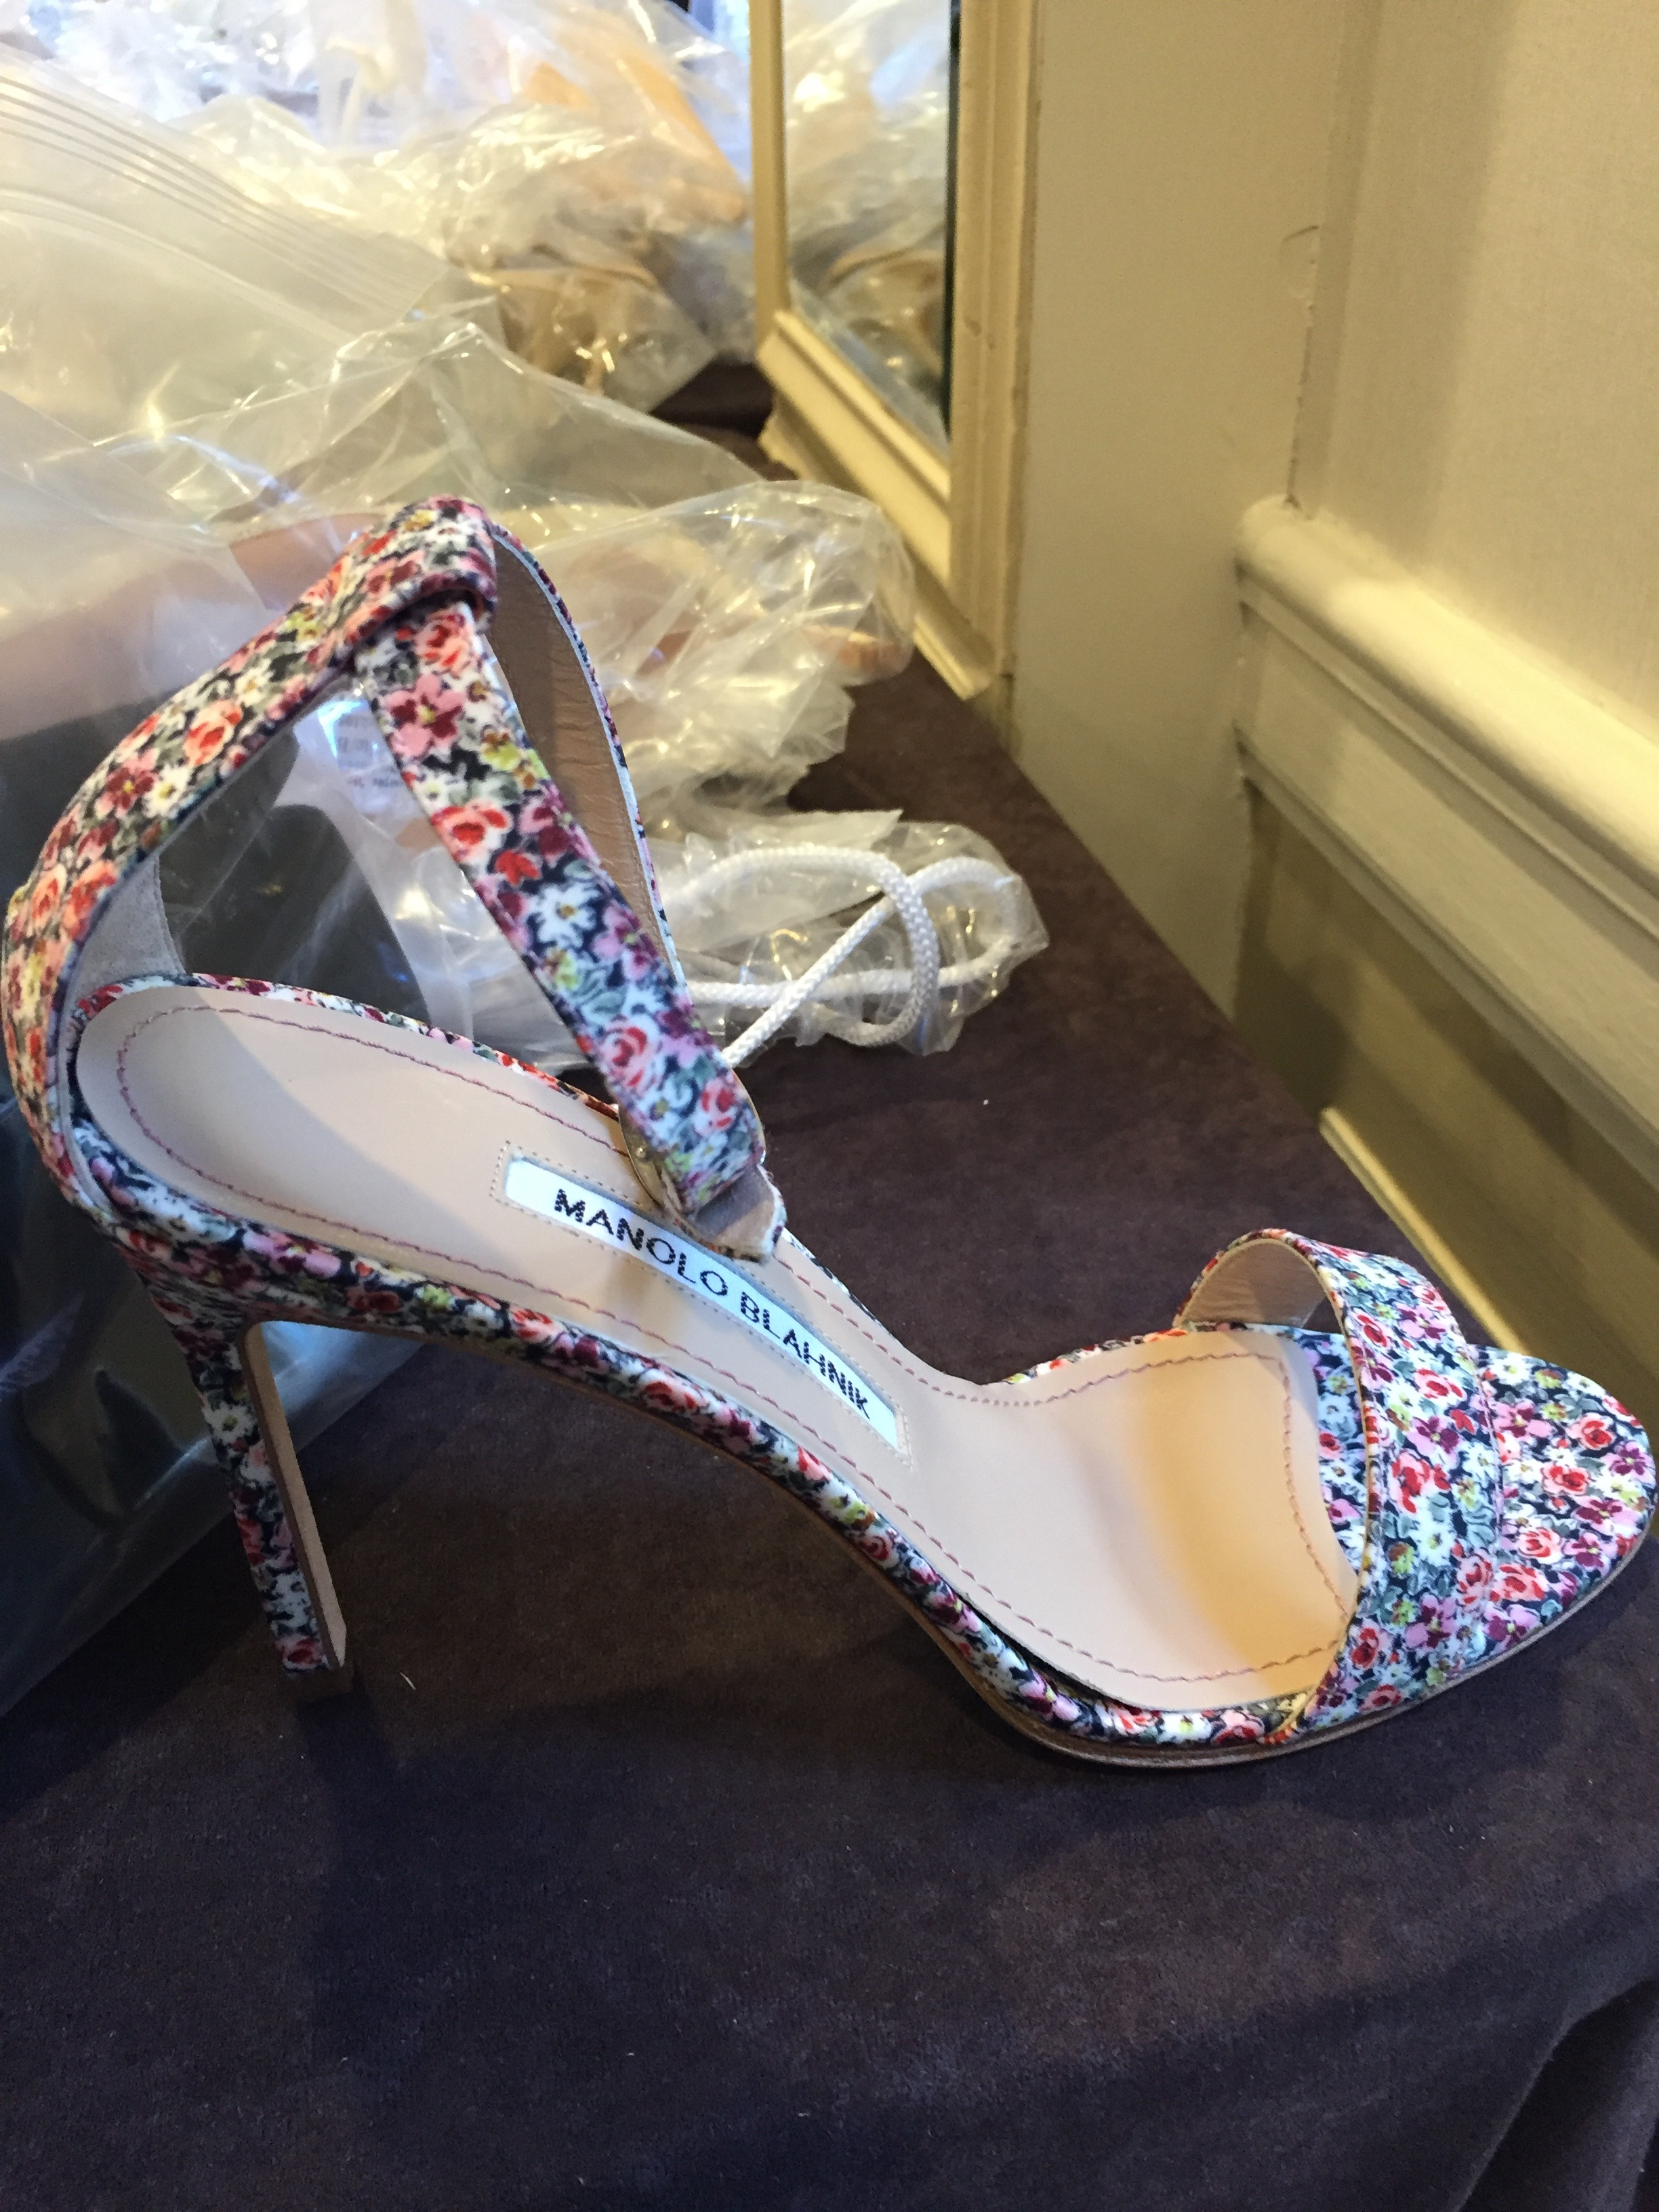 At Manolo Blahnik's Surprise Sample Sale, Shoppers Are Scooping Up Heels by the Boxful